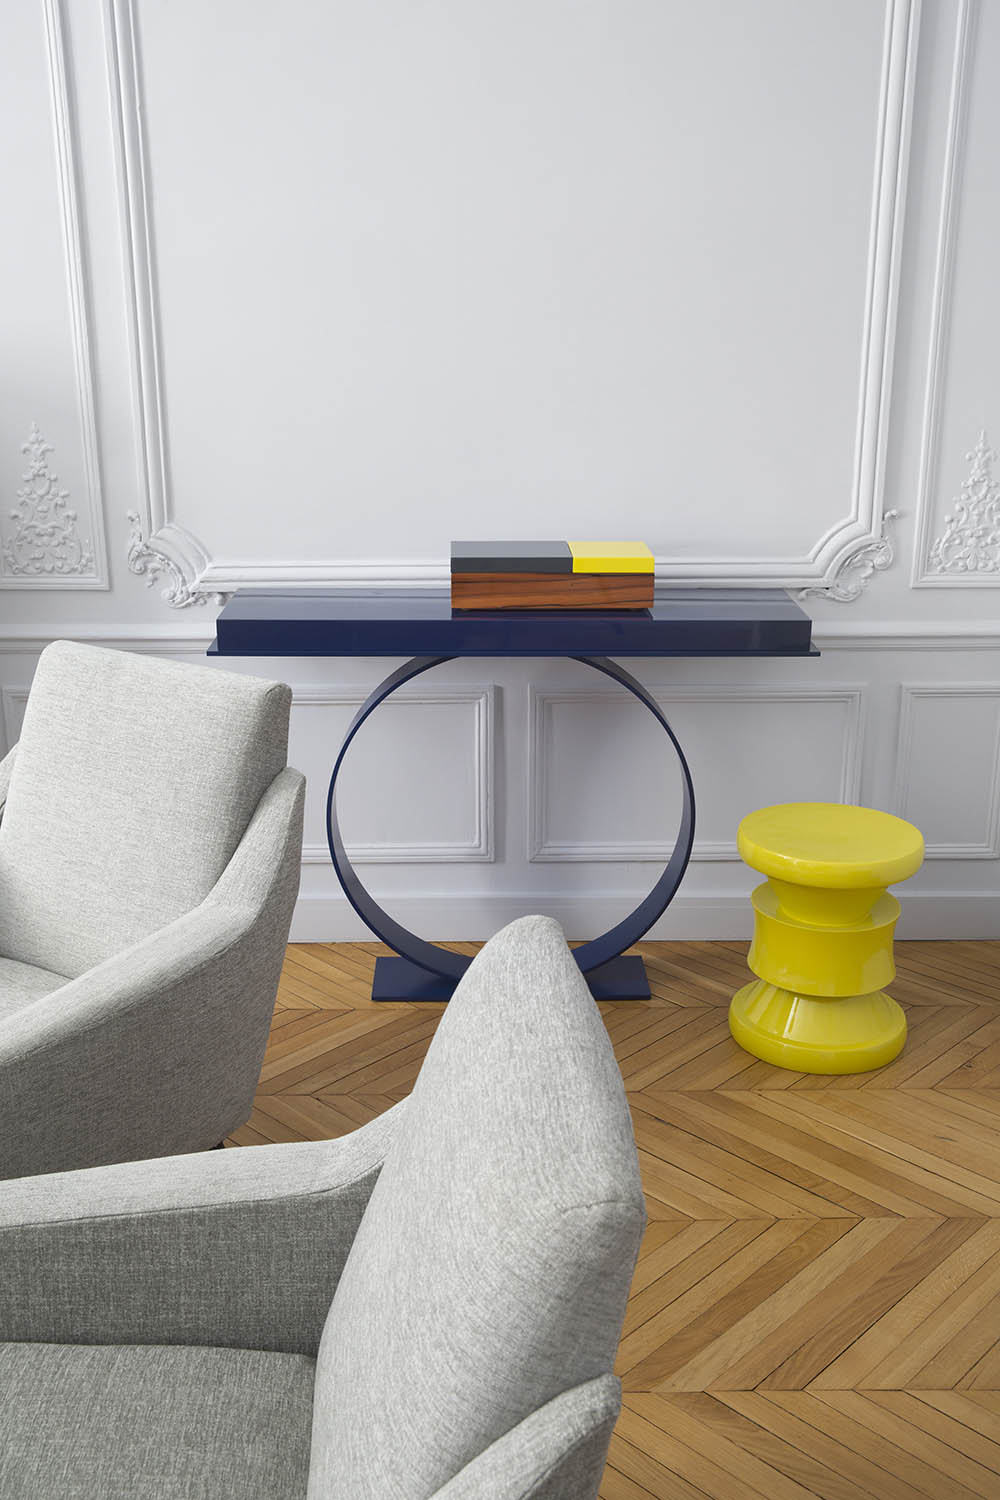 TIC_Le-Berre-Vevaud_STOOL-BARTH_4